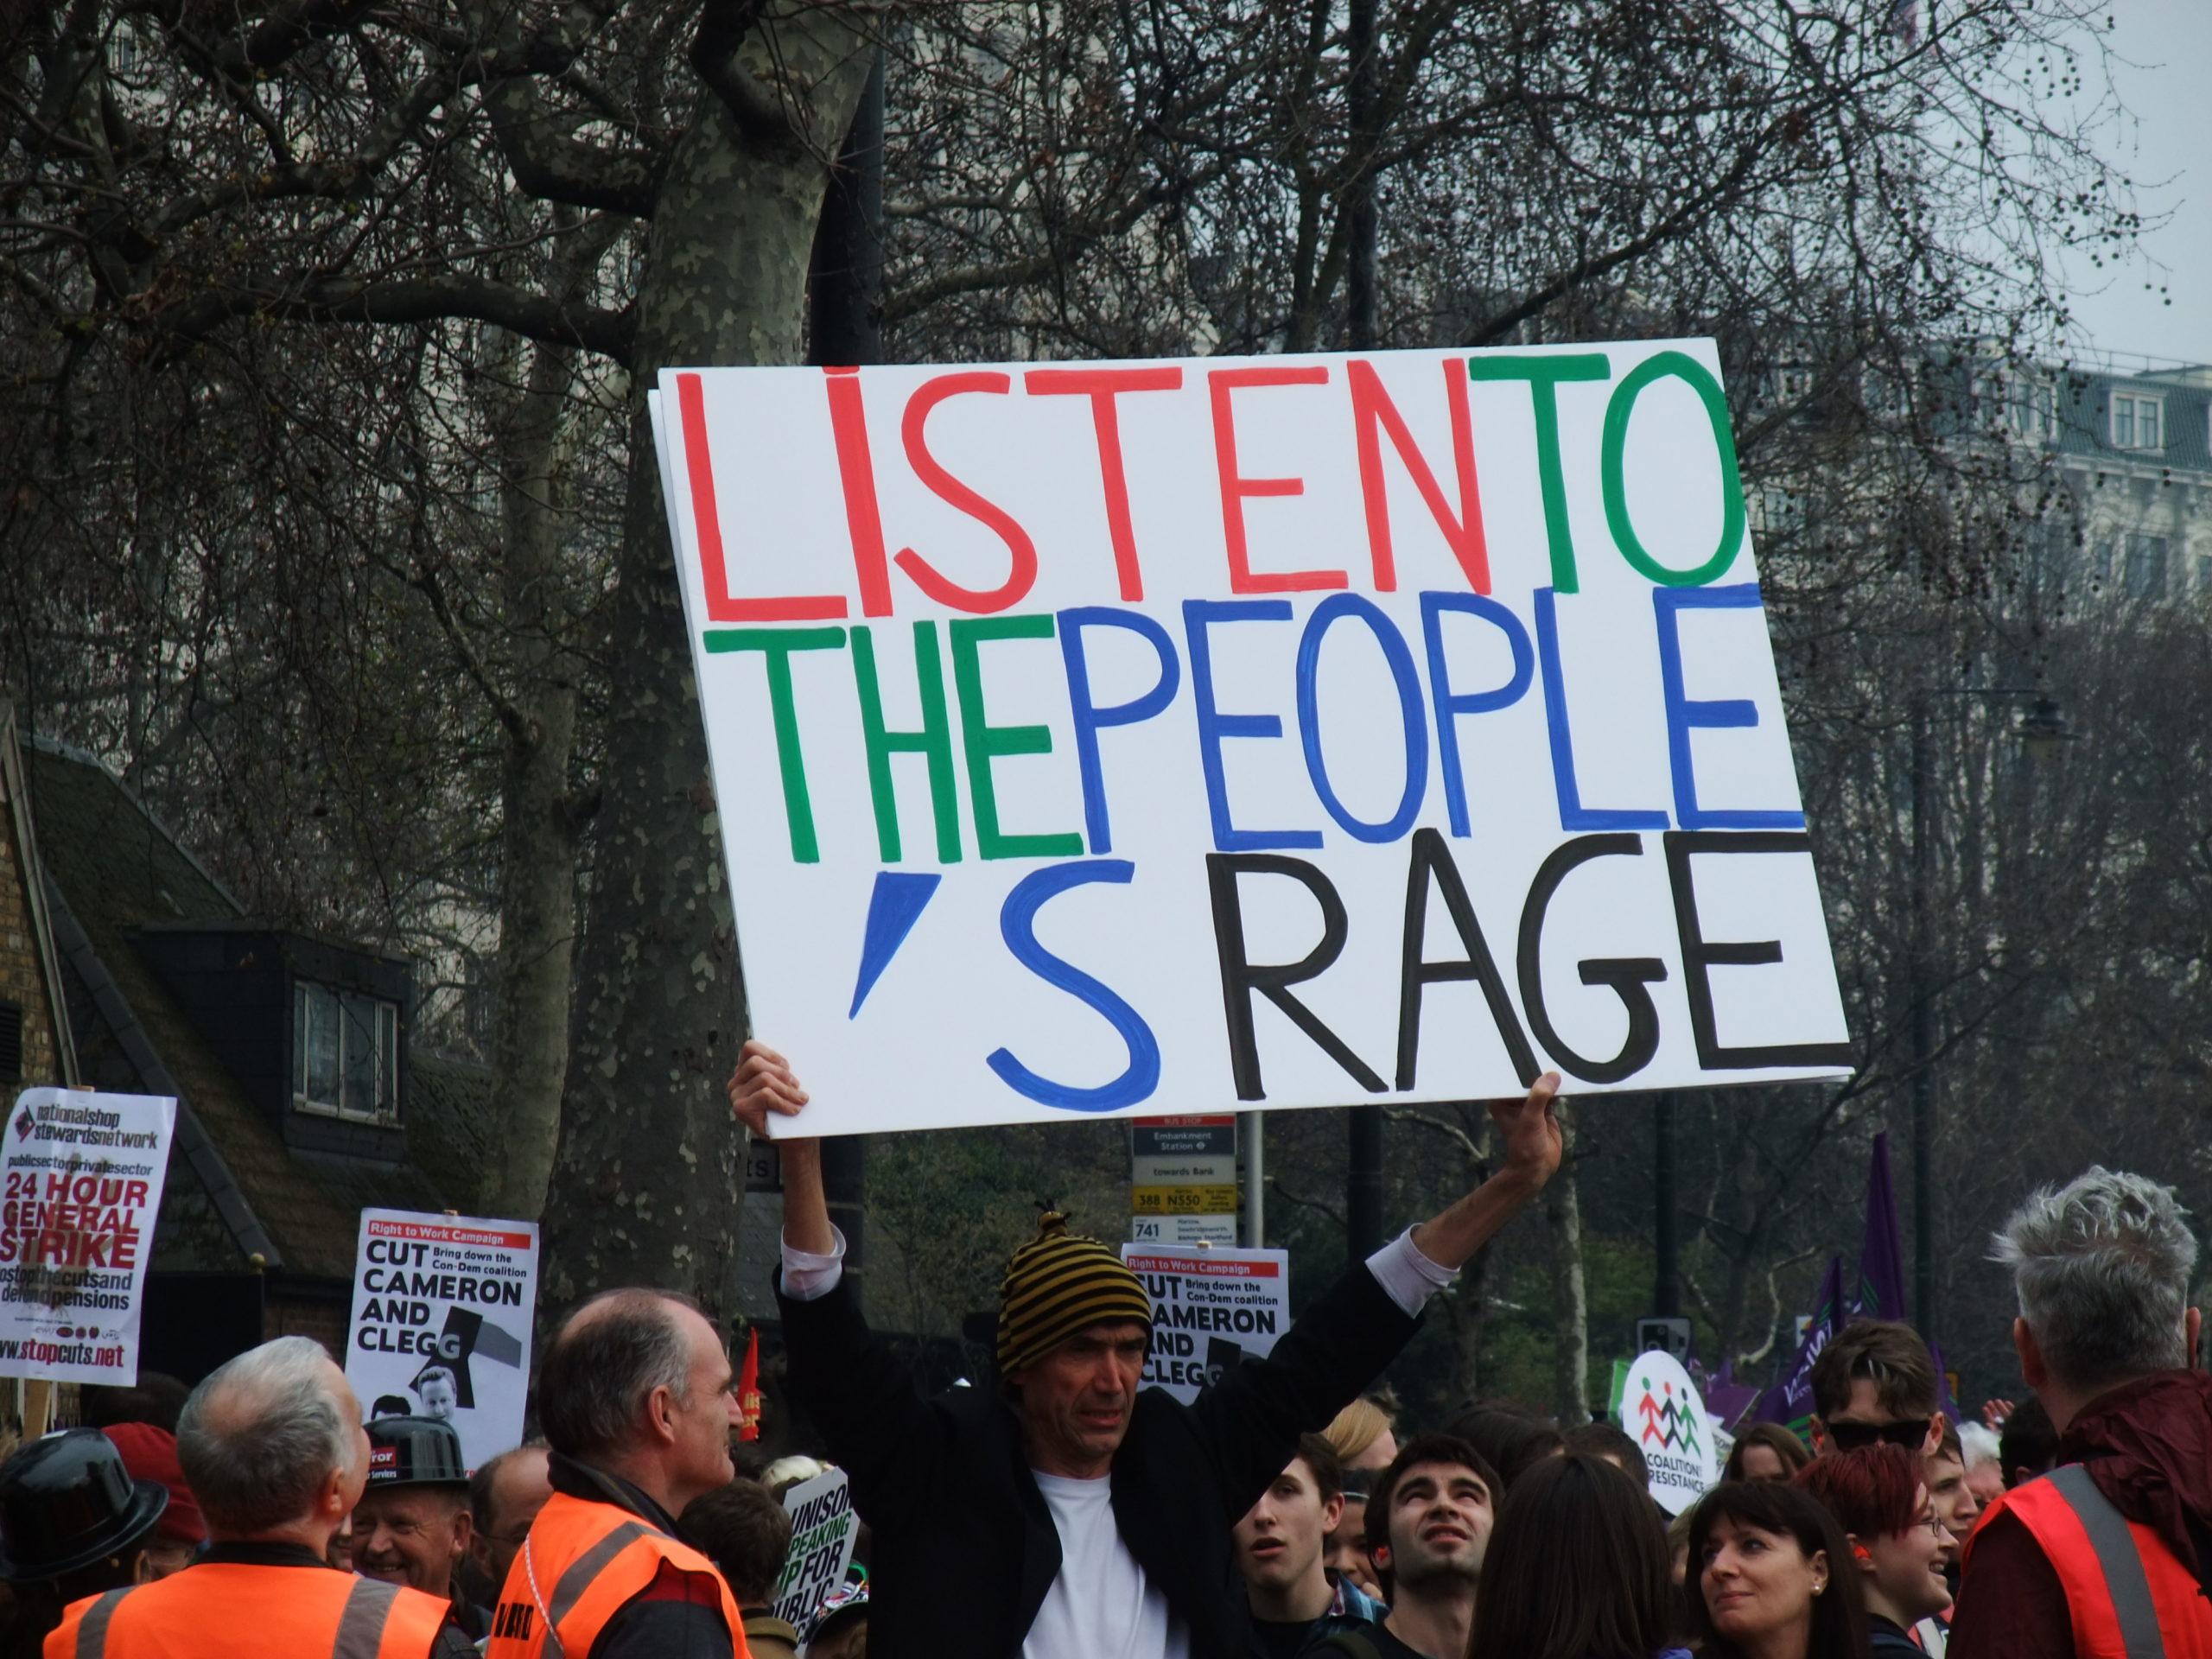 March for the Alternative, 26 March 2011, London